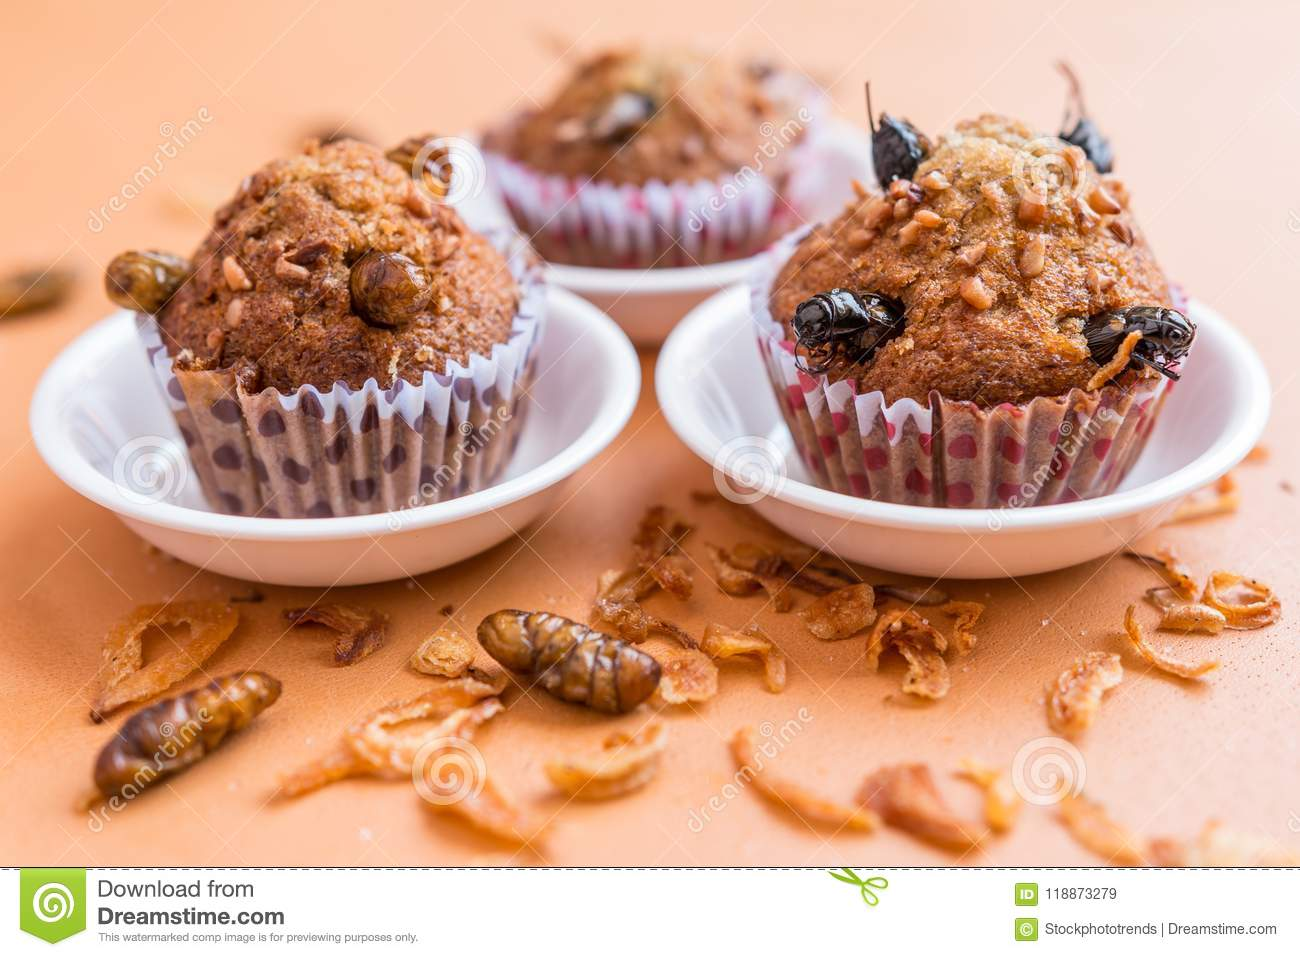 Banana cupcakes with insect